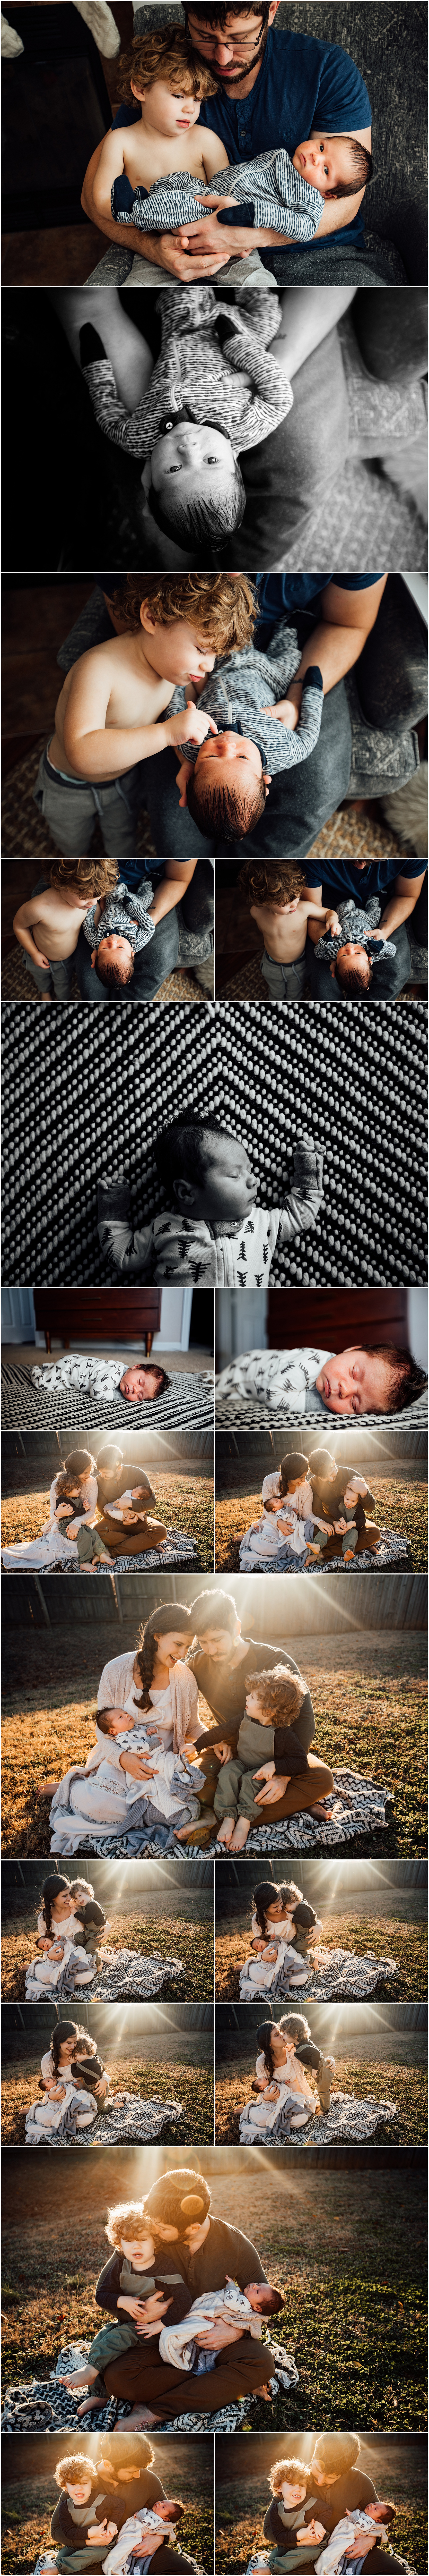 Huntsville newborn, family, and maternity photographer